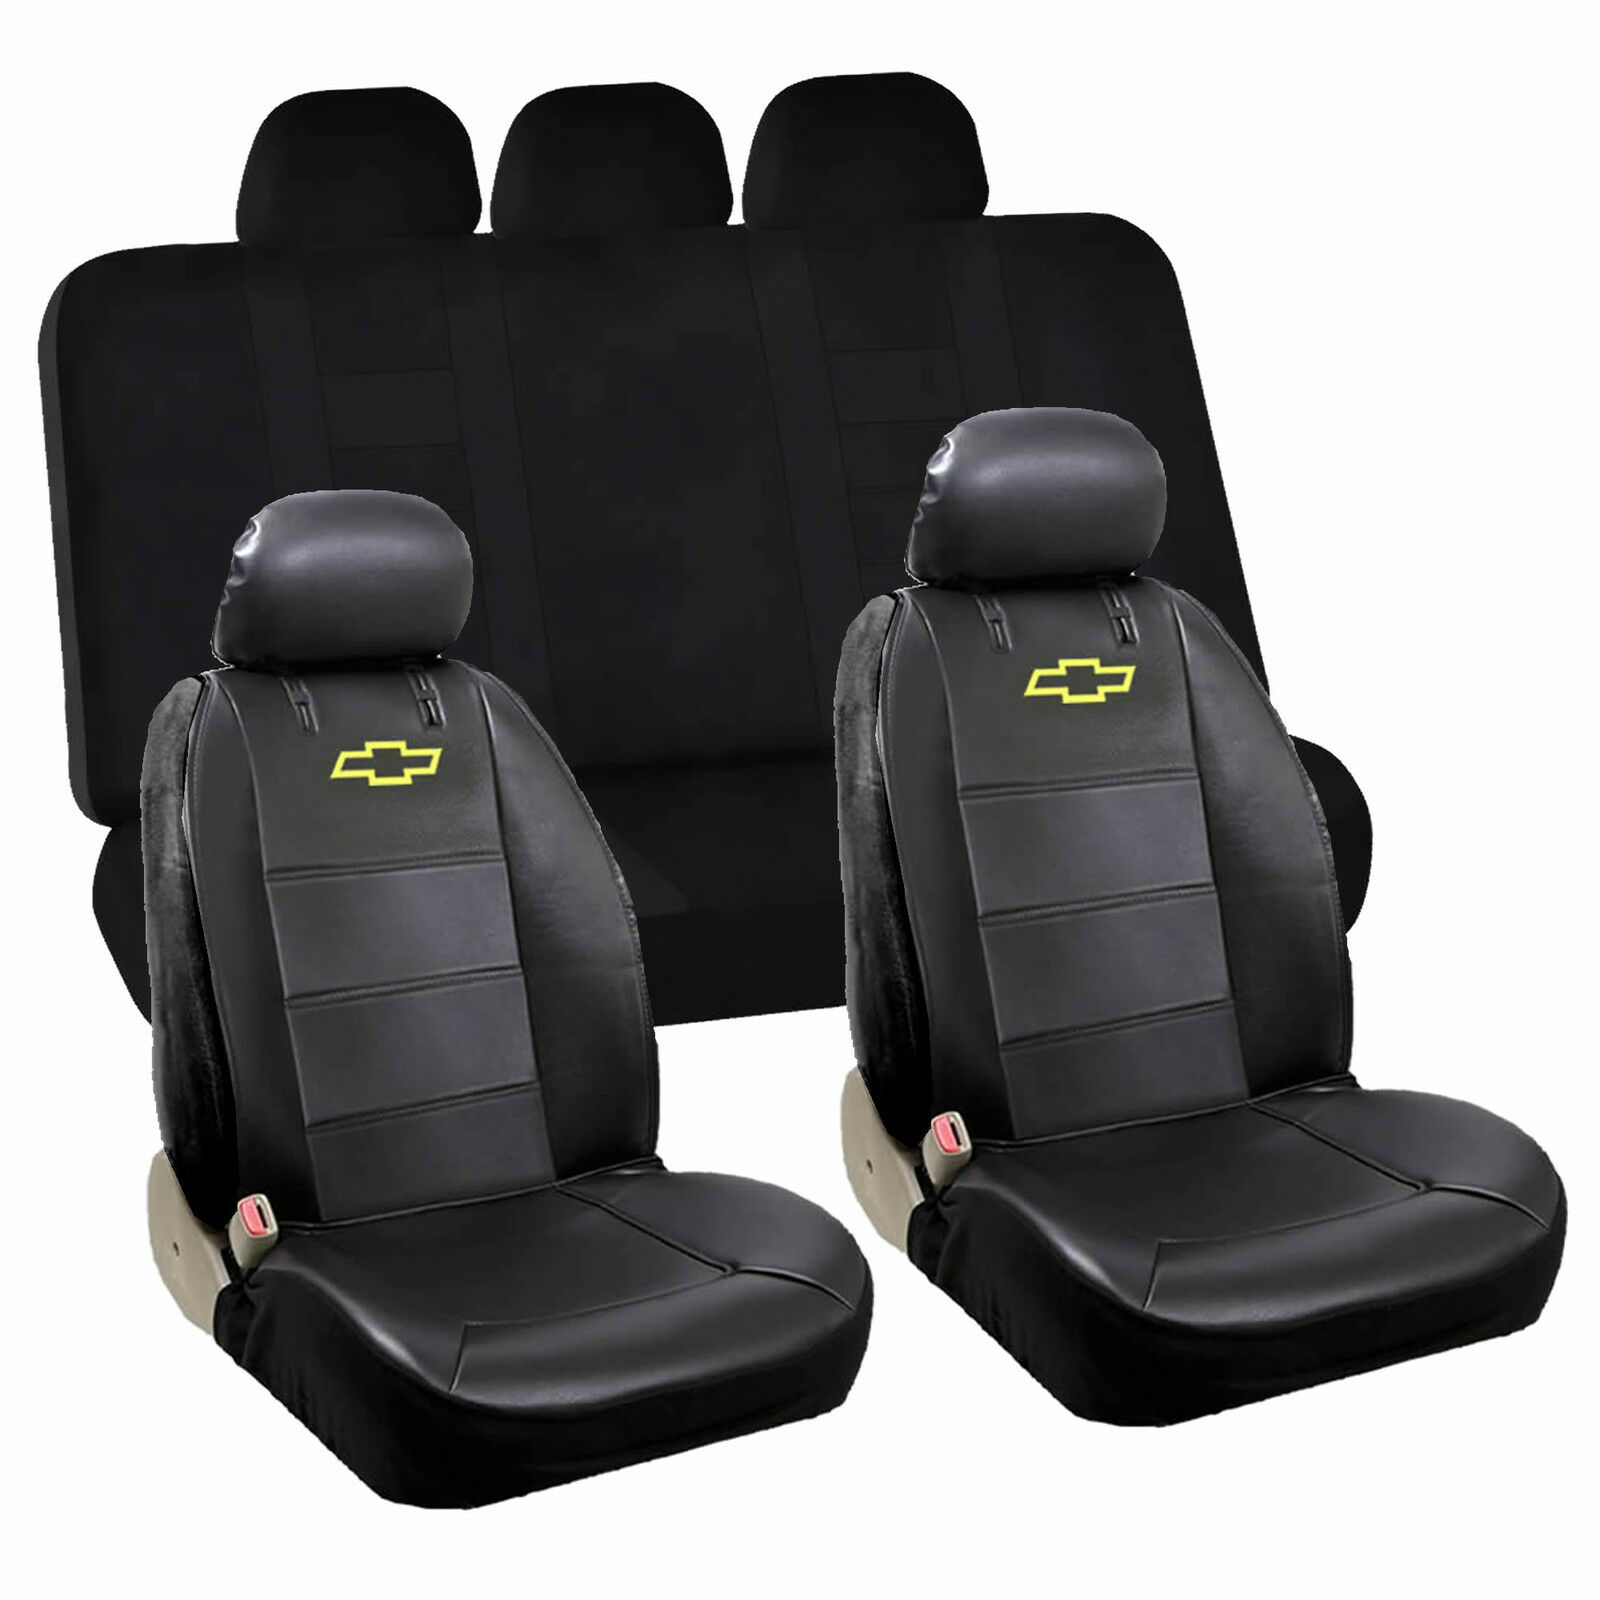 New Chevy Bowtie Logo Car Truck 2 Front Sideless Seat Covers Floor Mats Set